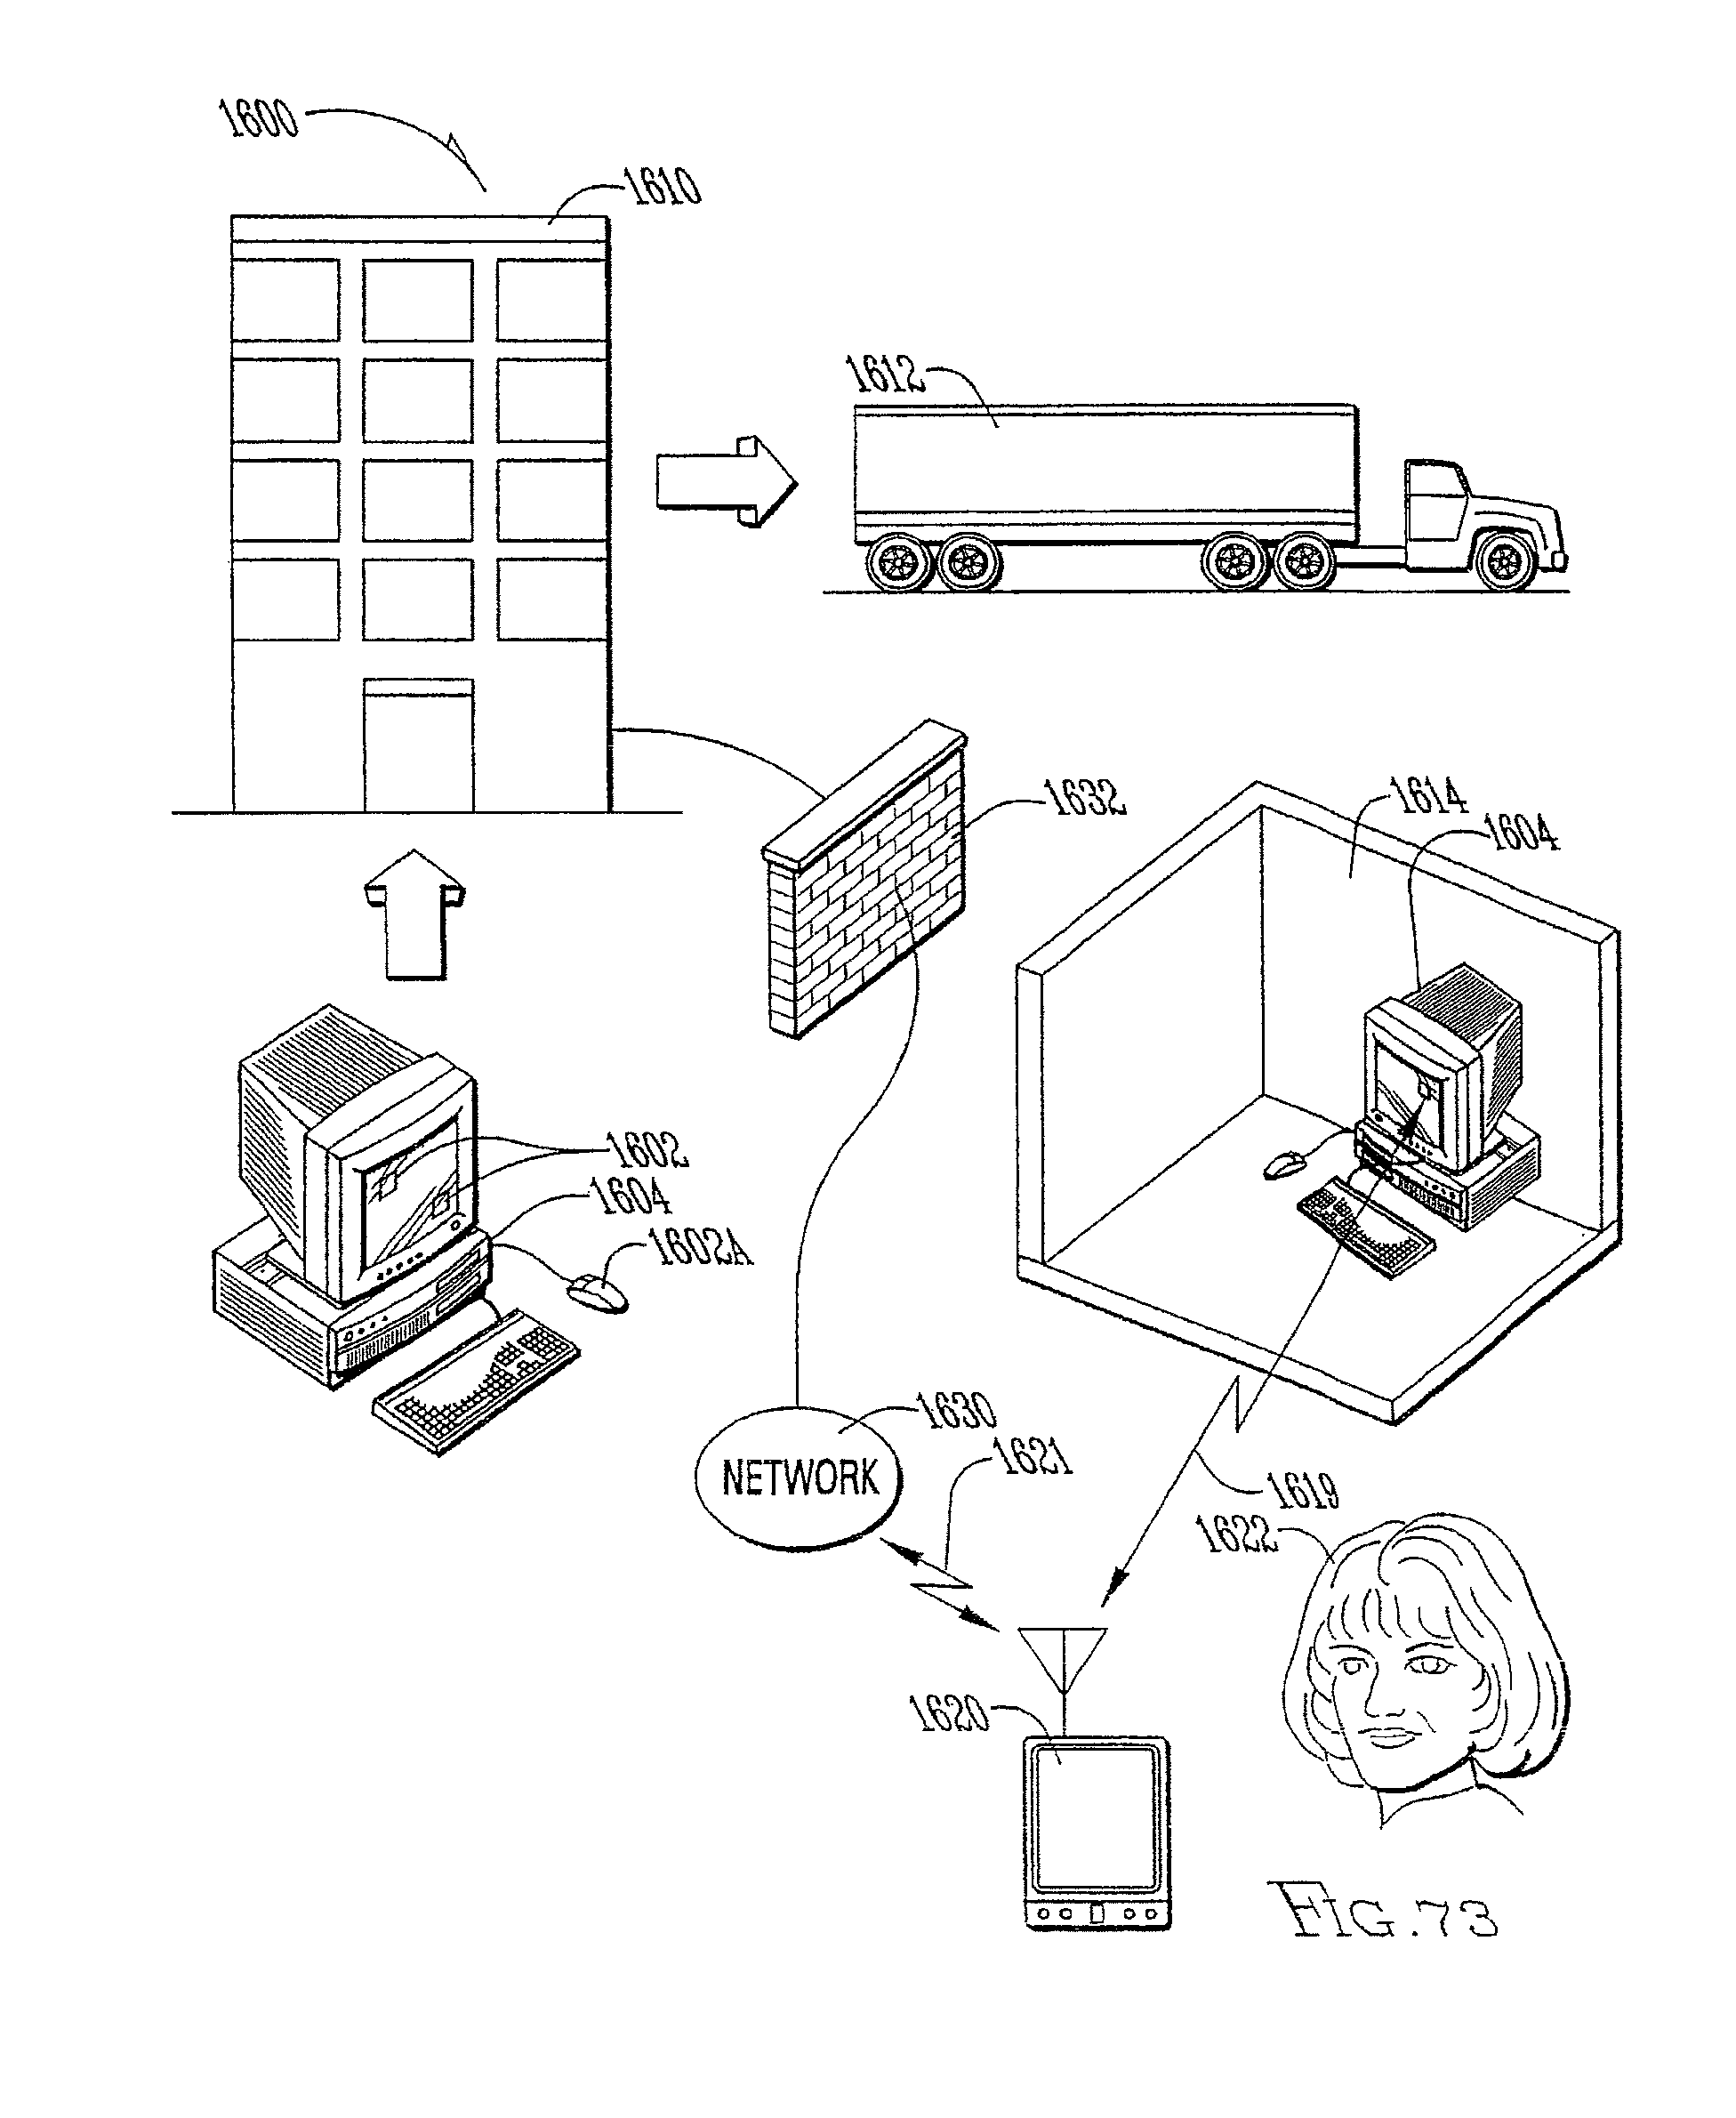 Patent Us8396687 Machine Logic Airtime Sensor For Board Sports Along With Fishing Reel Parts Diagram Double Pole Relay Drawing